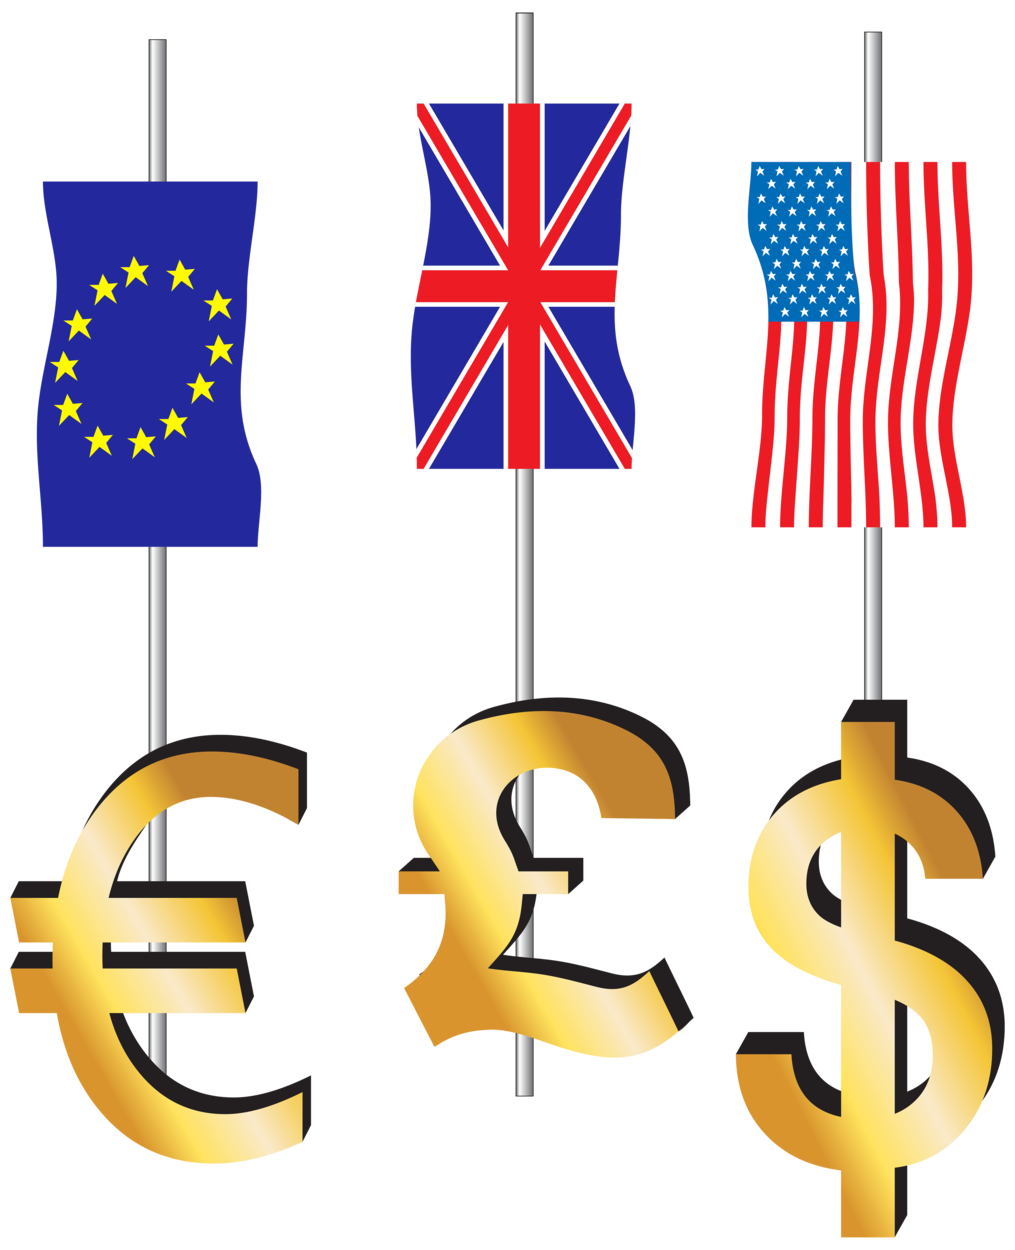 Euro Pound Dollar Signs and Flags PNG Clipart